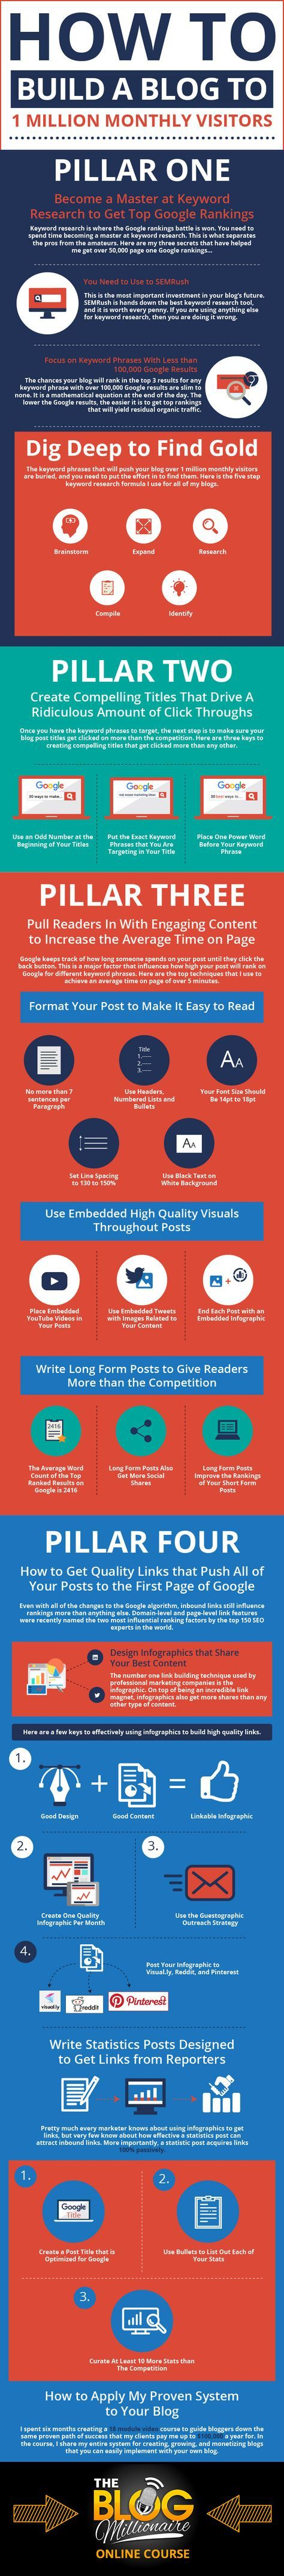 This is one incredible infographic that shows you what it takes to build your blog traffic to over 1 million monthly visitors.